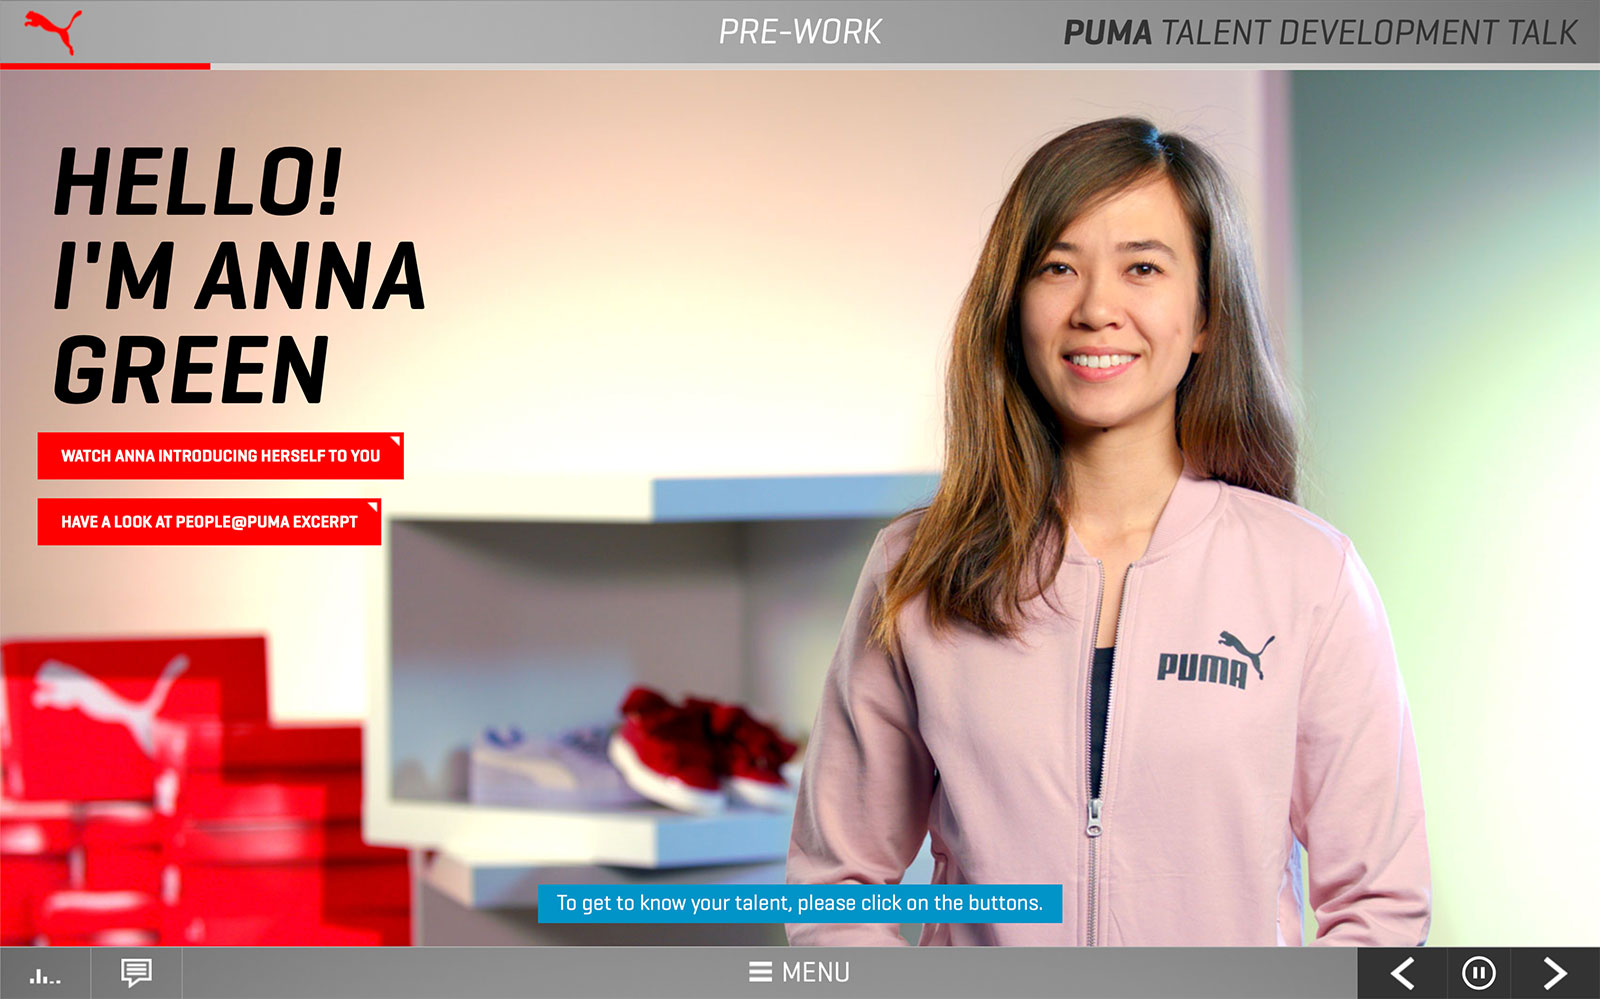 Screenshot PUMA Talent Development Talk 'Hello! I'm Anna Green'